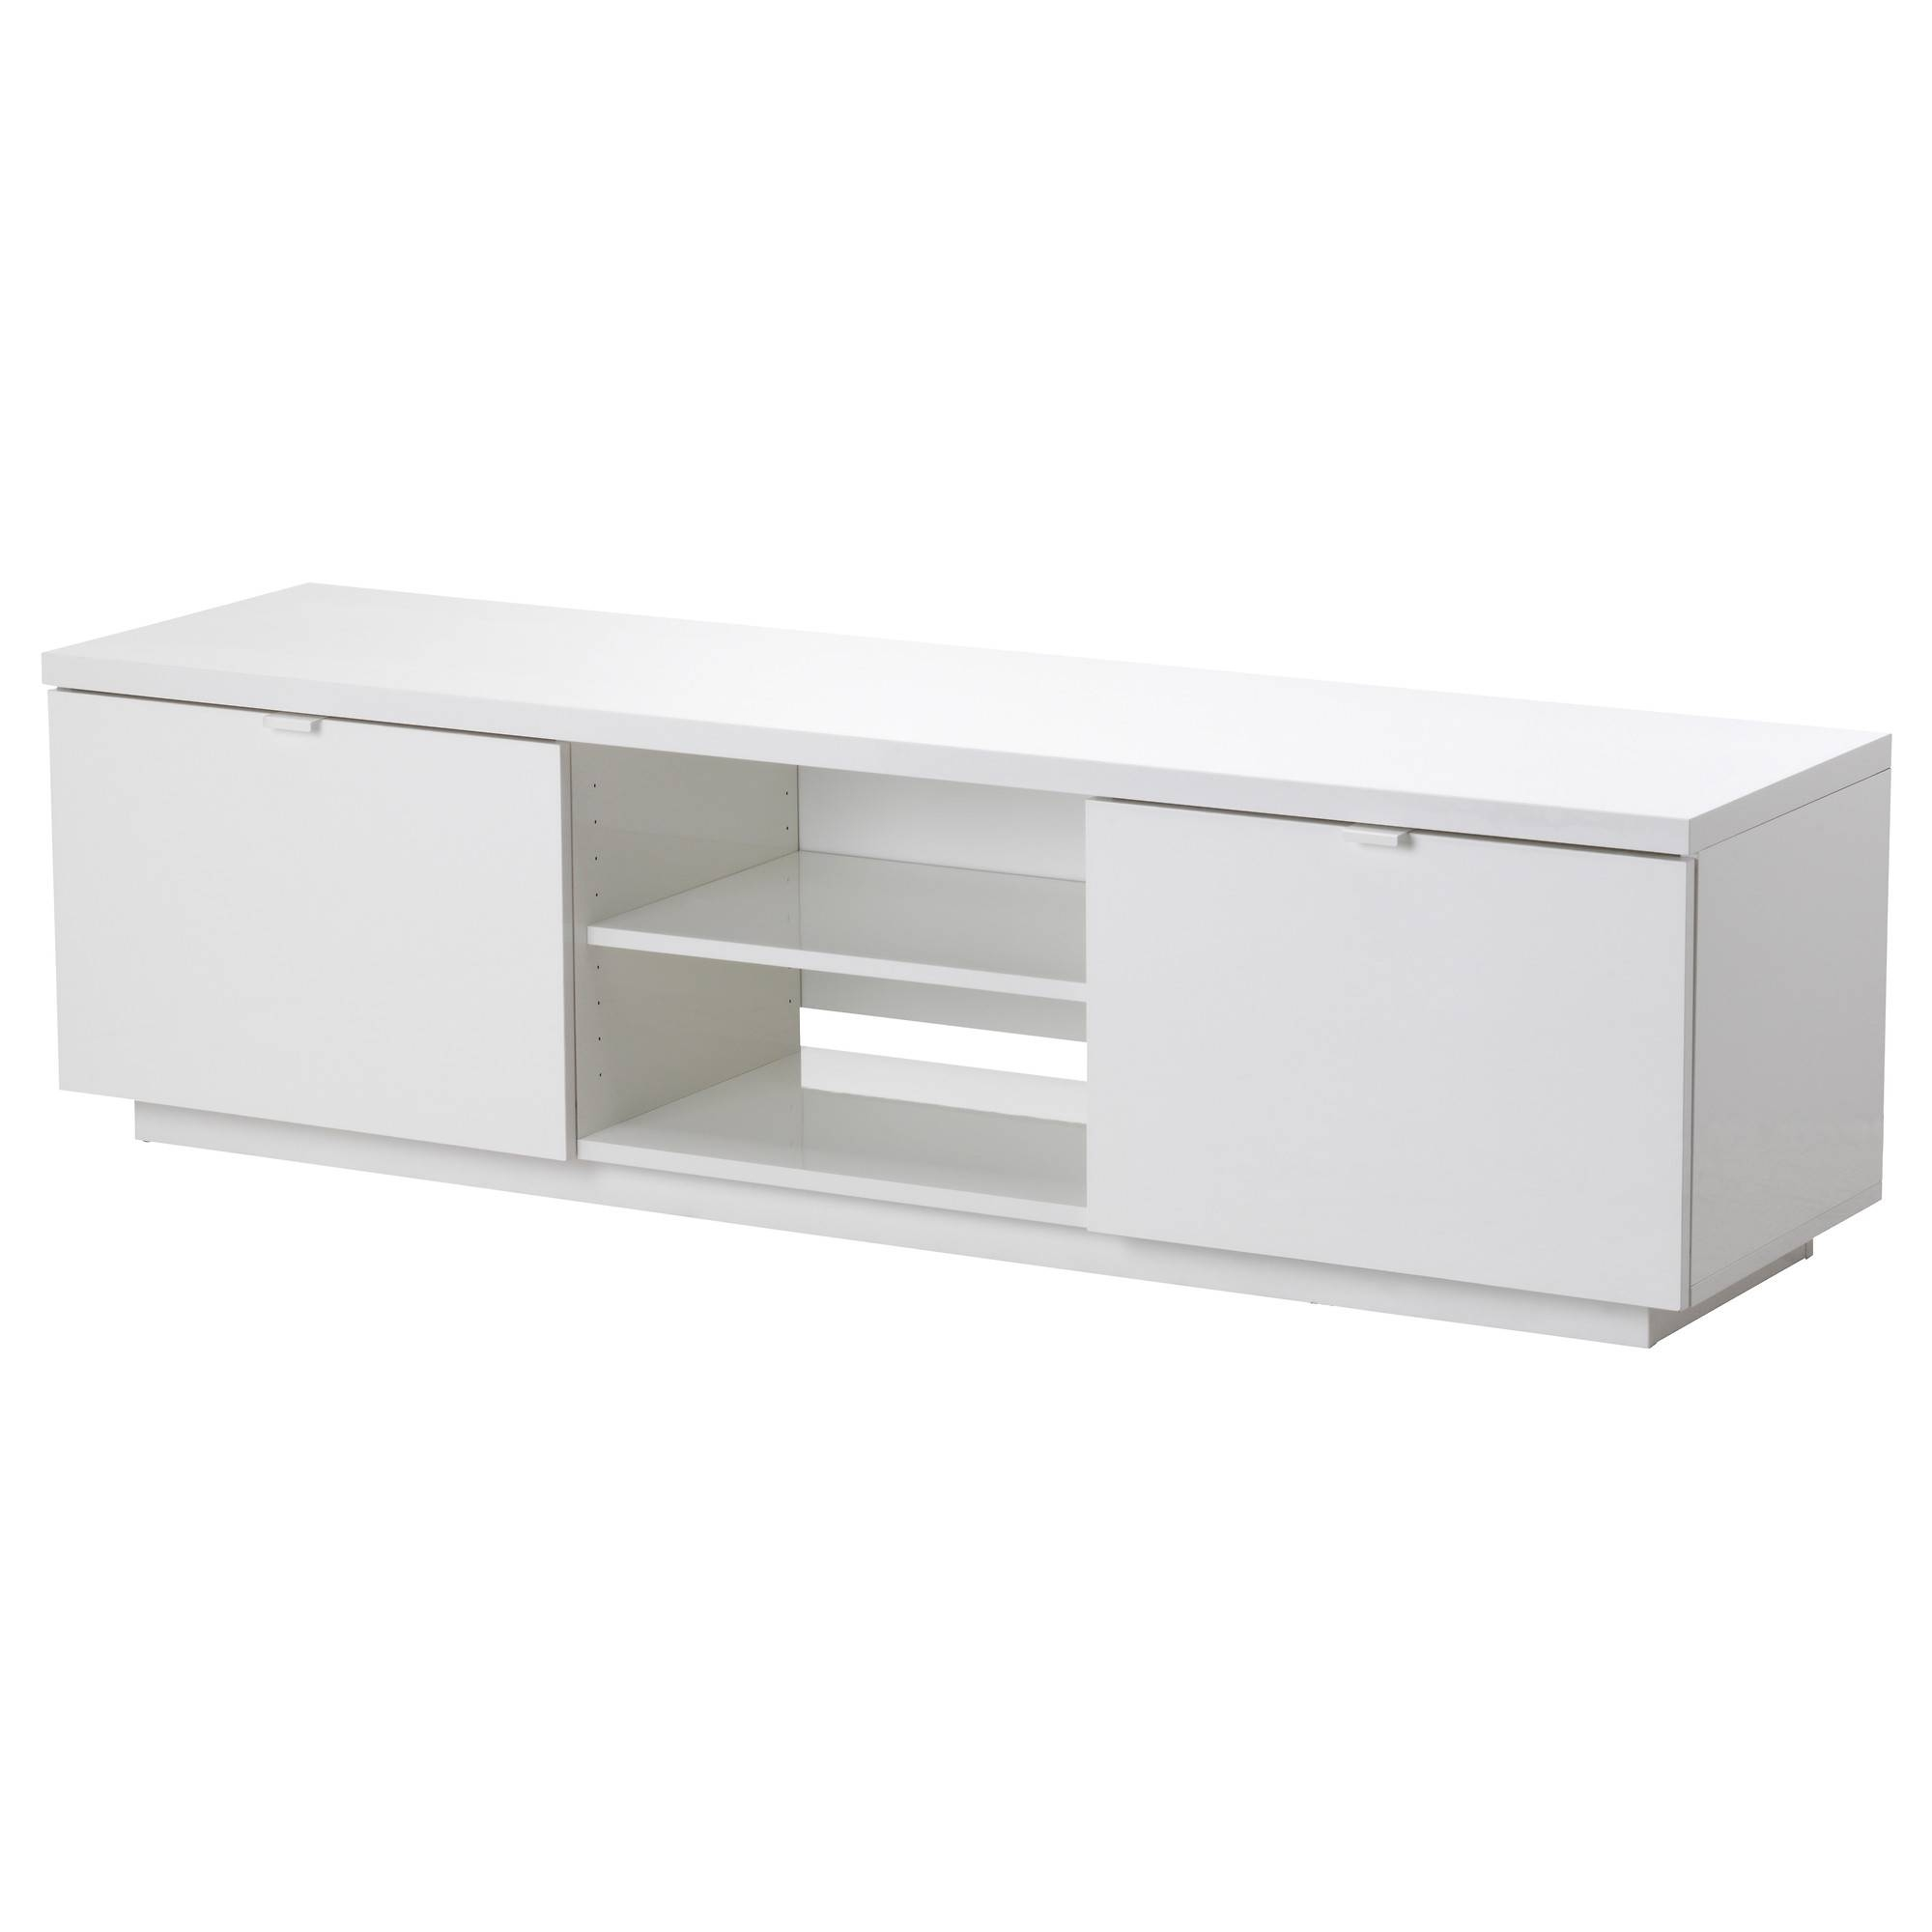 Amazing Small White Tv Cabinet 19 For Your House Interiors With Within Small White Tv Cabinets (View 2 of 15)